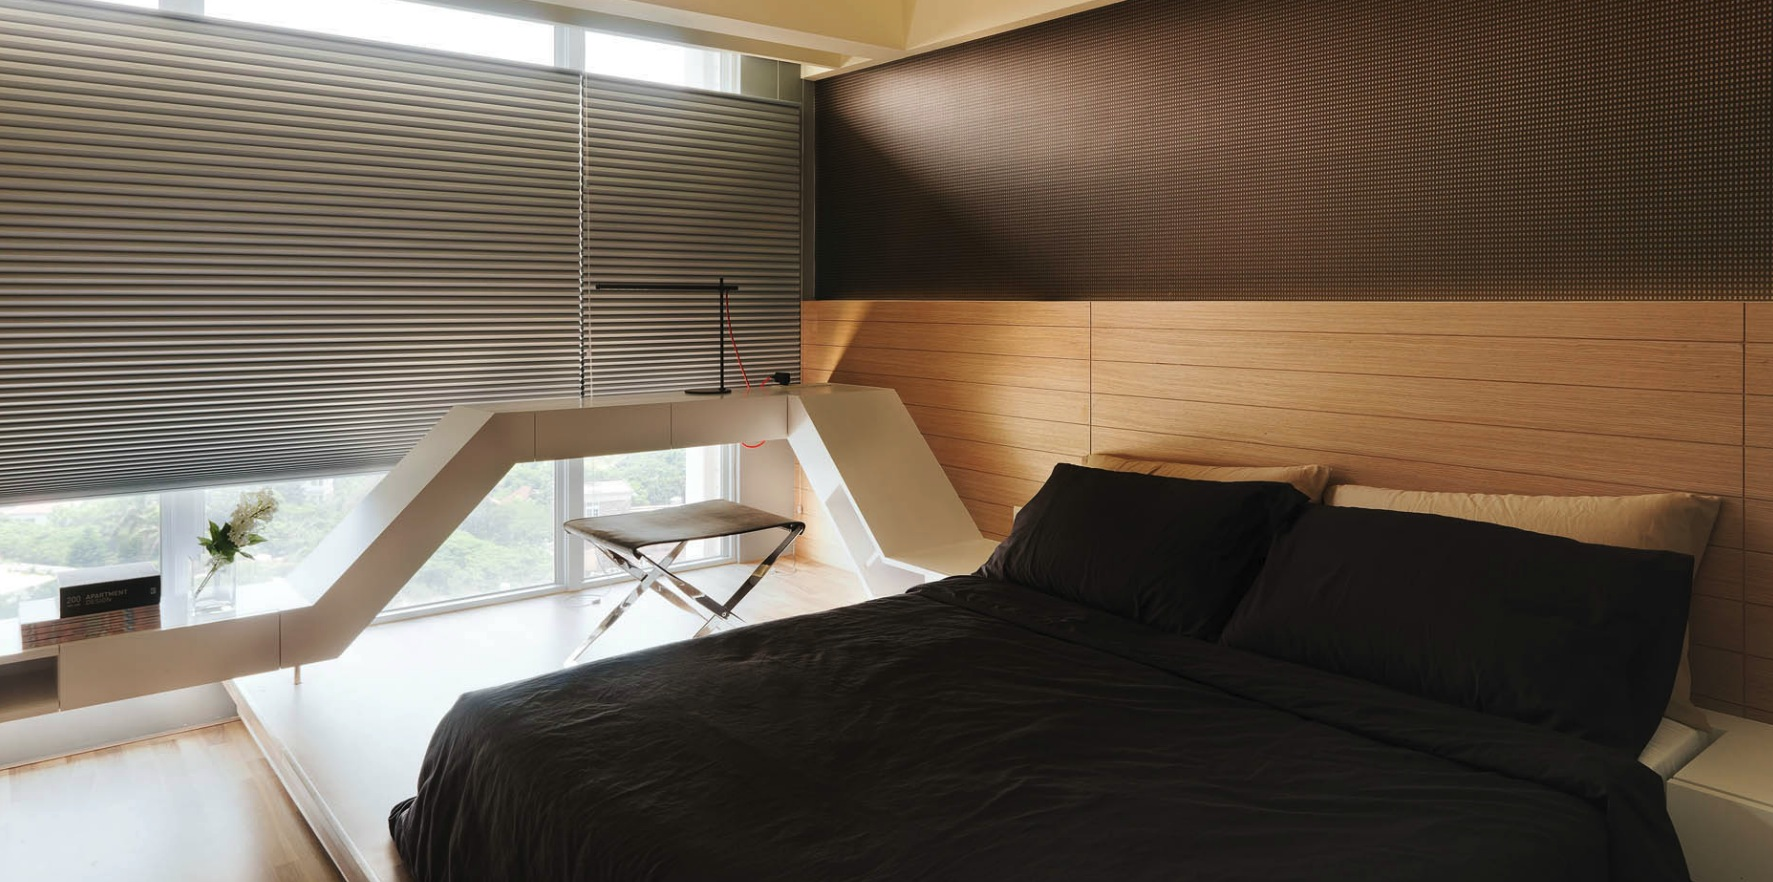 Modern semi minimilist design bedroom master interior design ideas